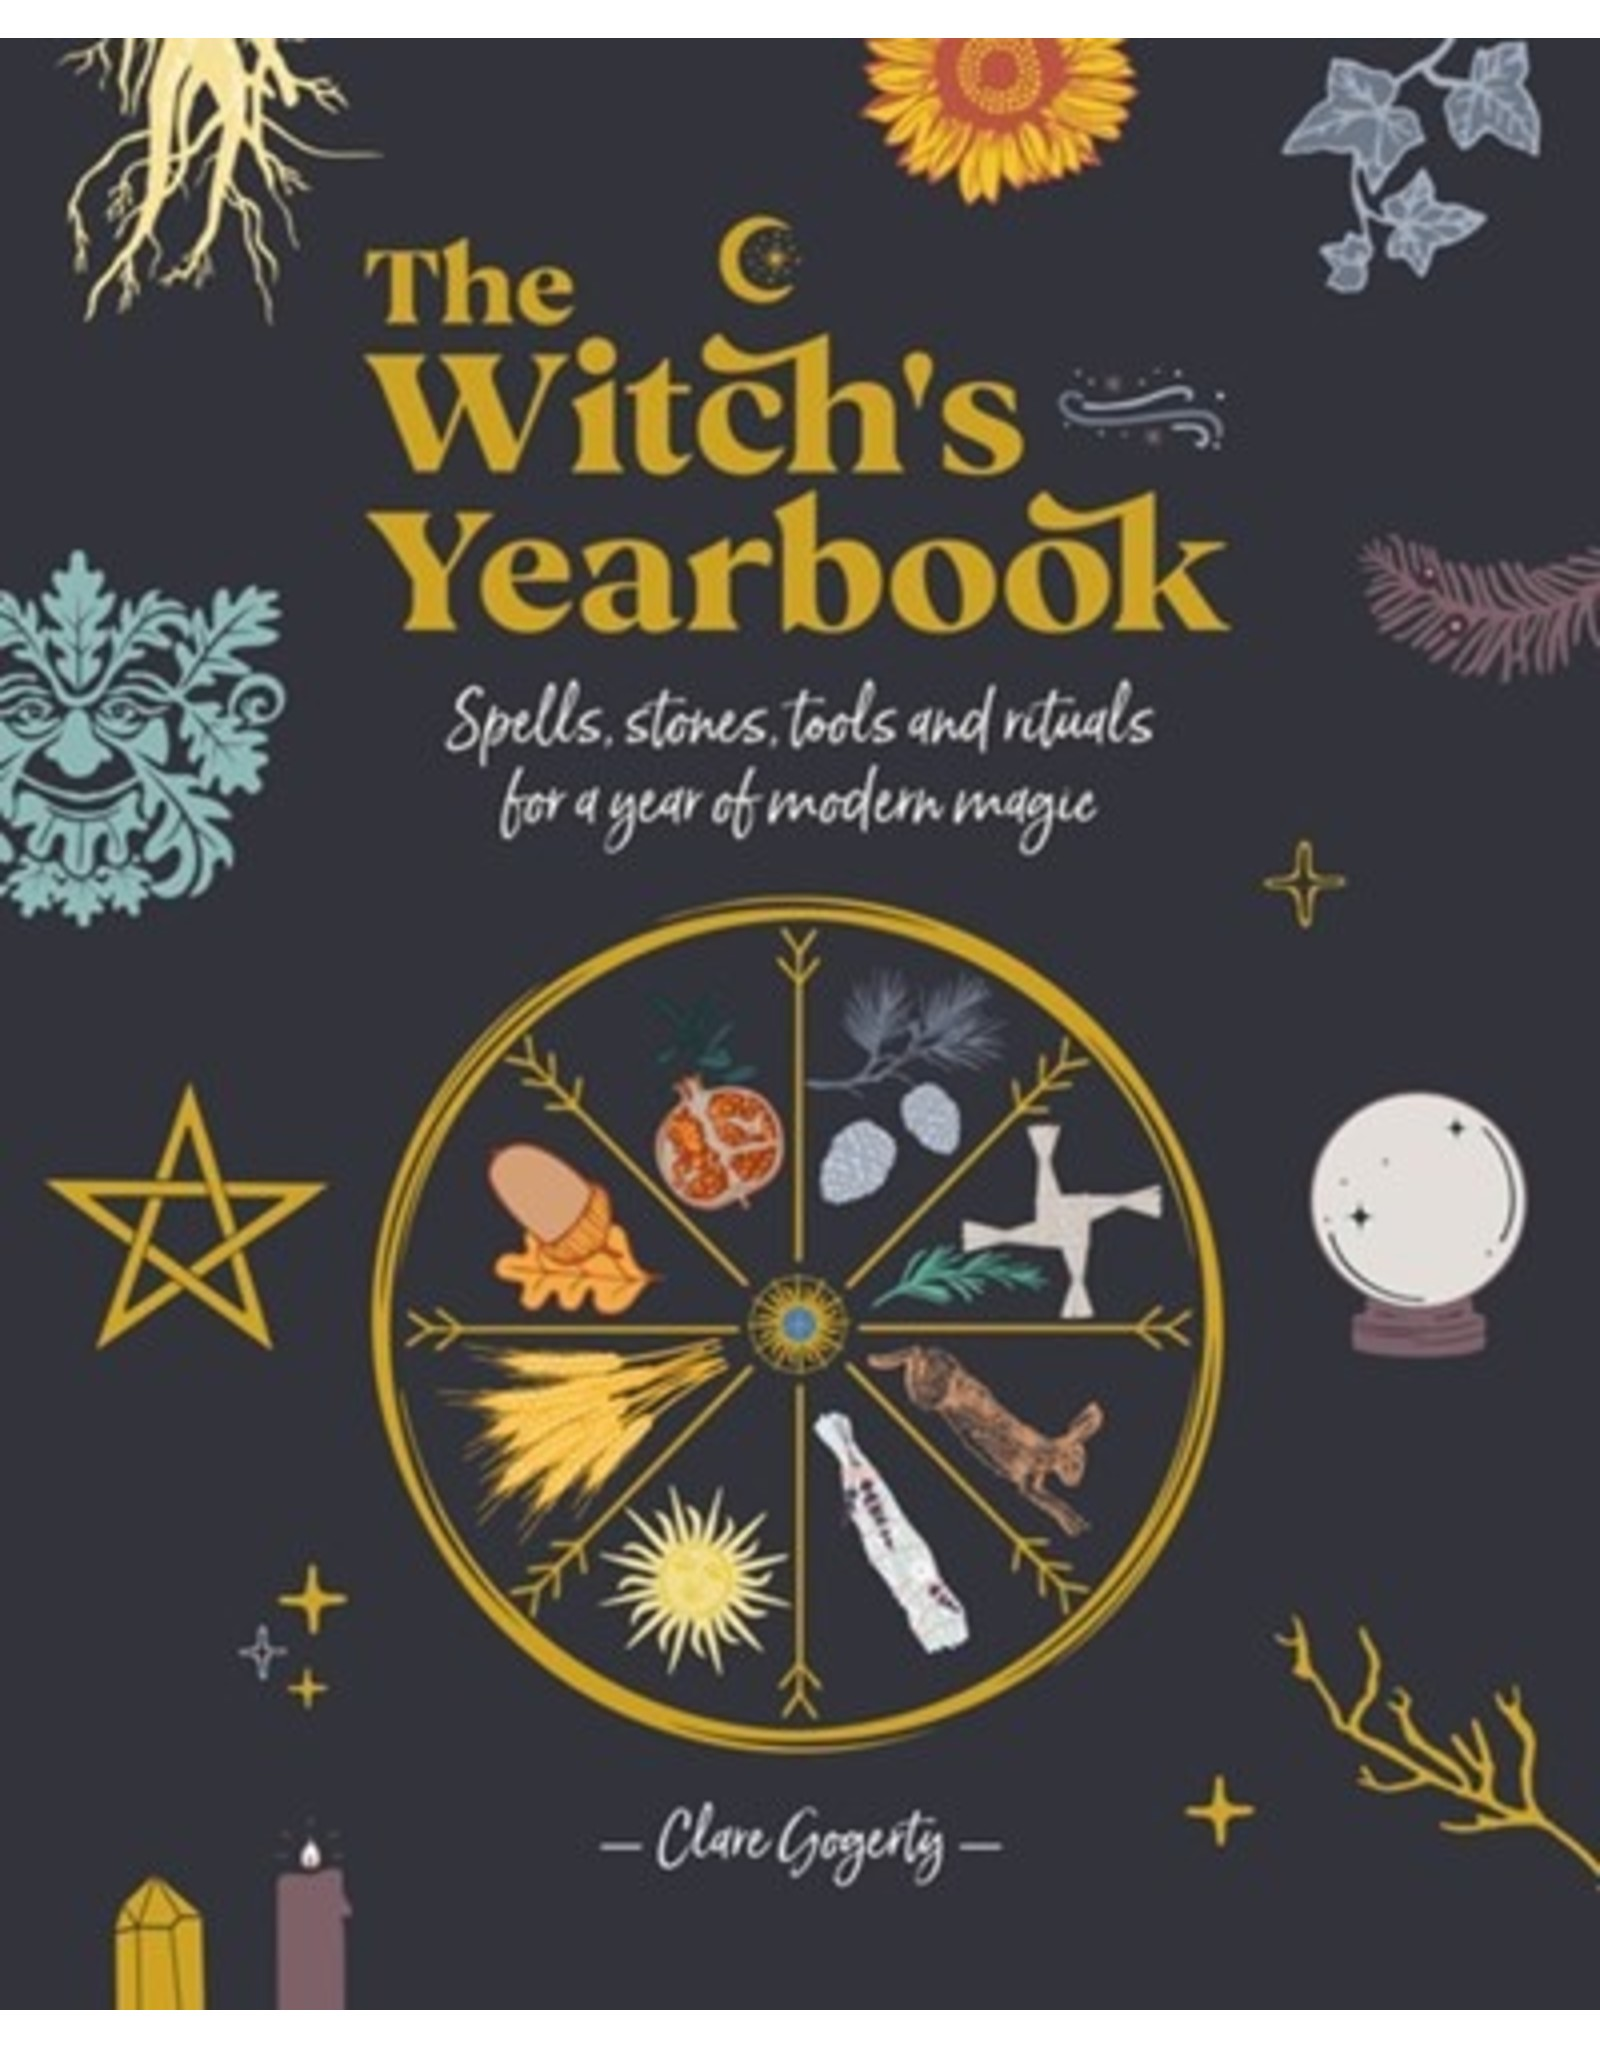 Books The Witches Yearbook: Spells, Stones, Tools and Rituals for a year of Modern Magic